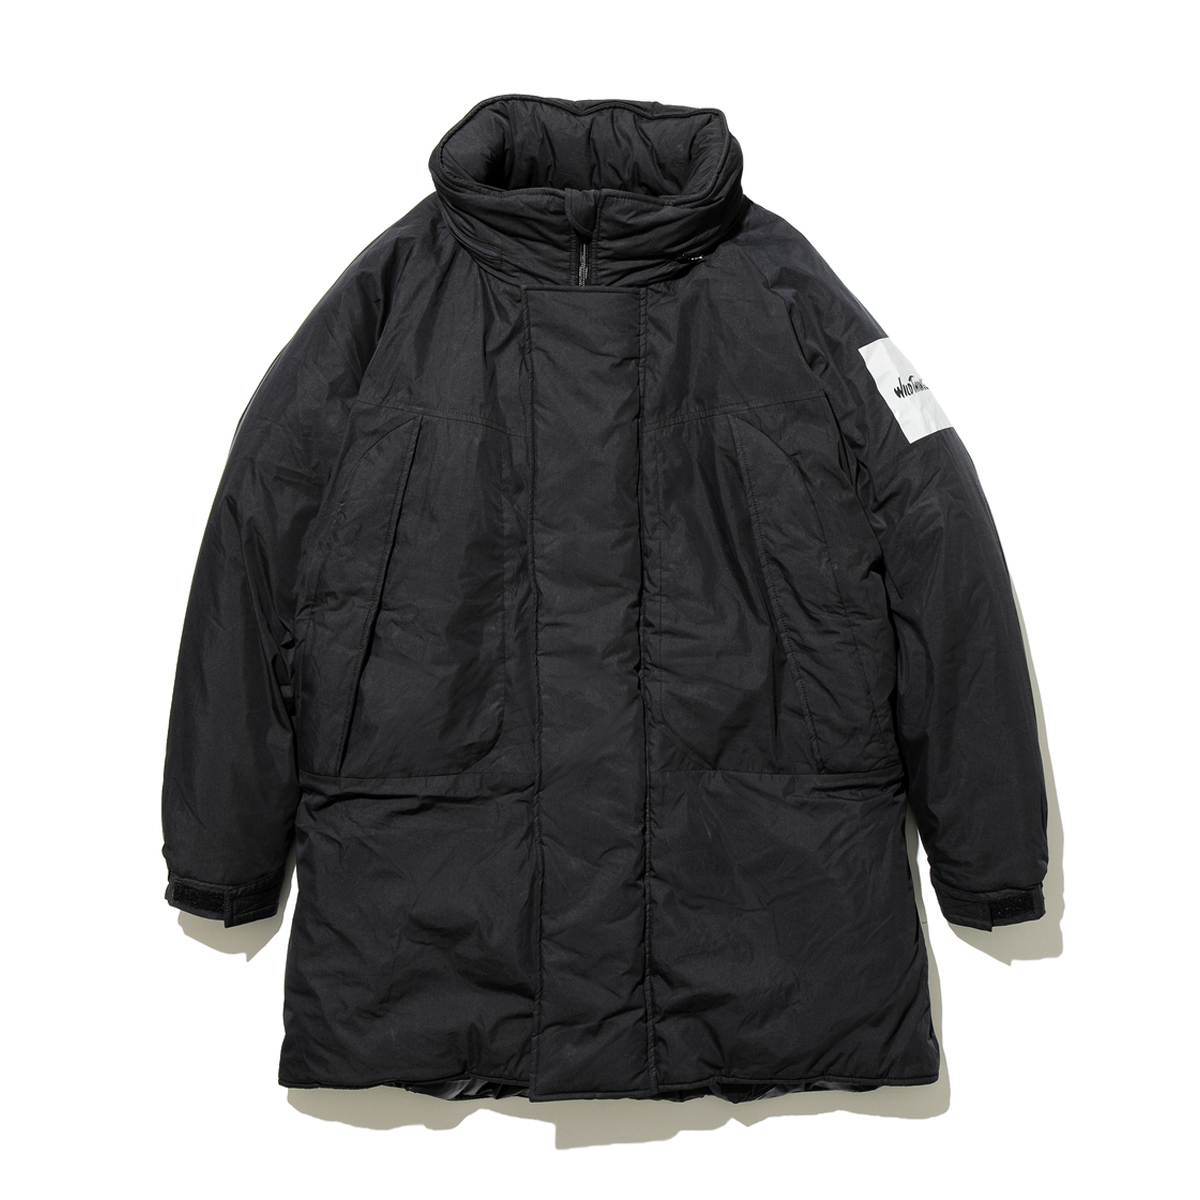 [WILD THINGS] MONSTER PARKA 'BLACK'